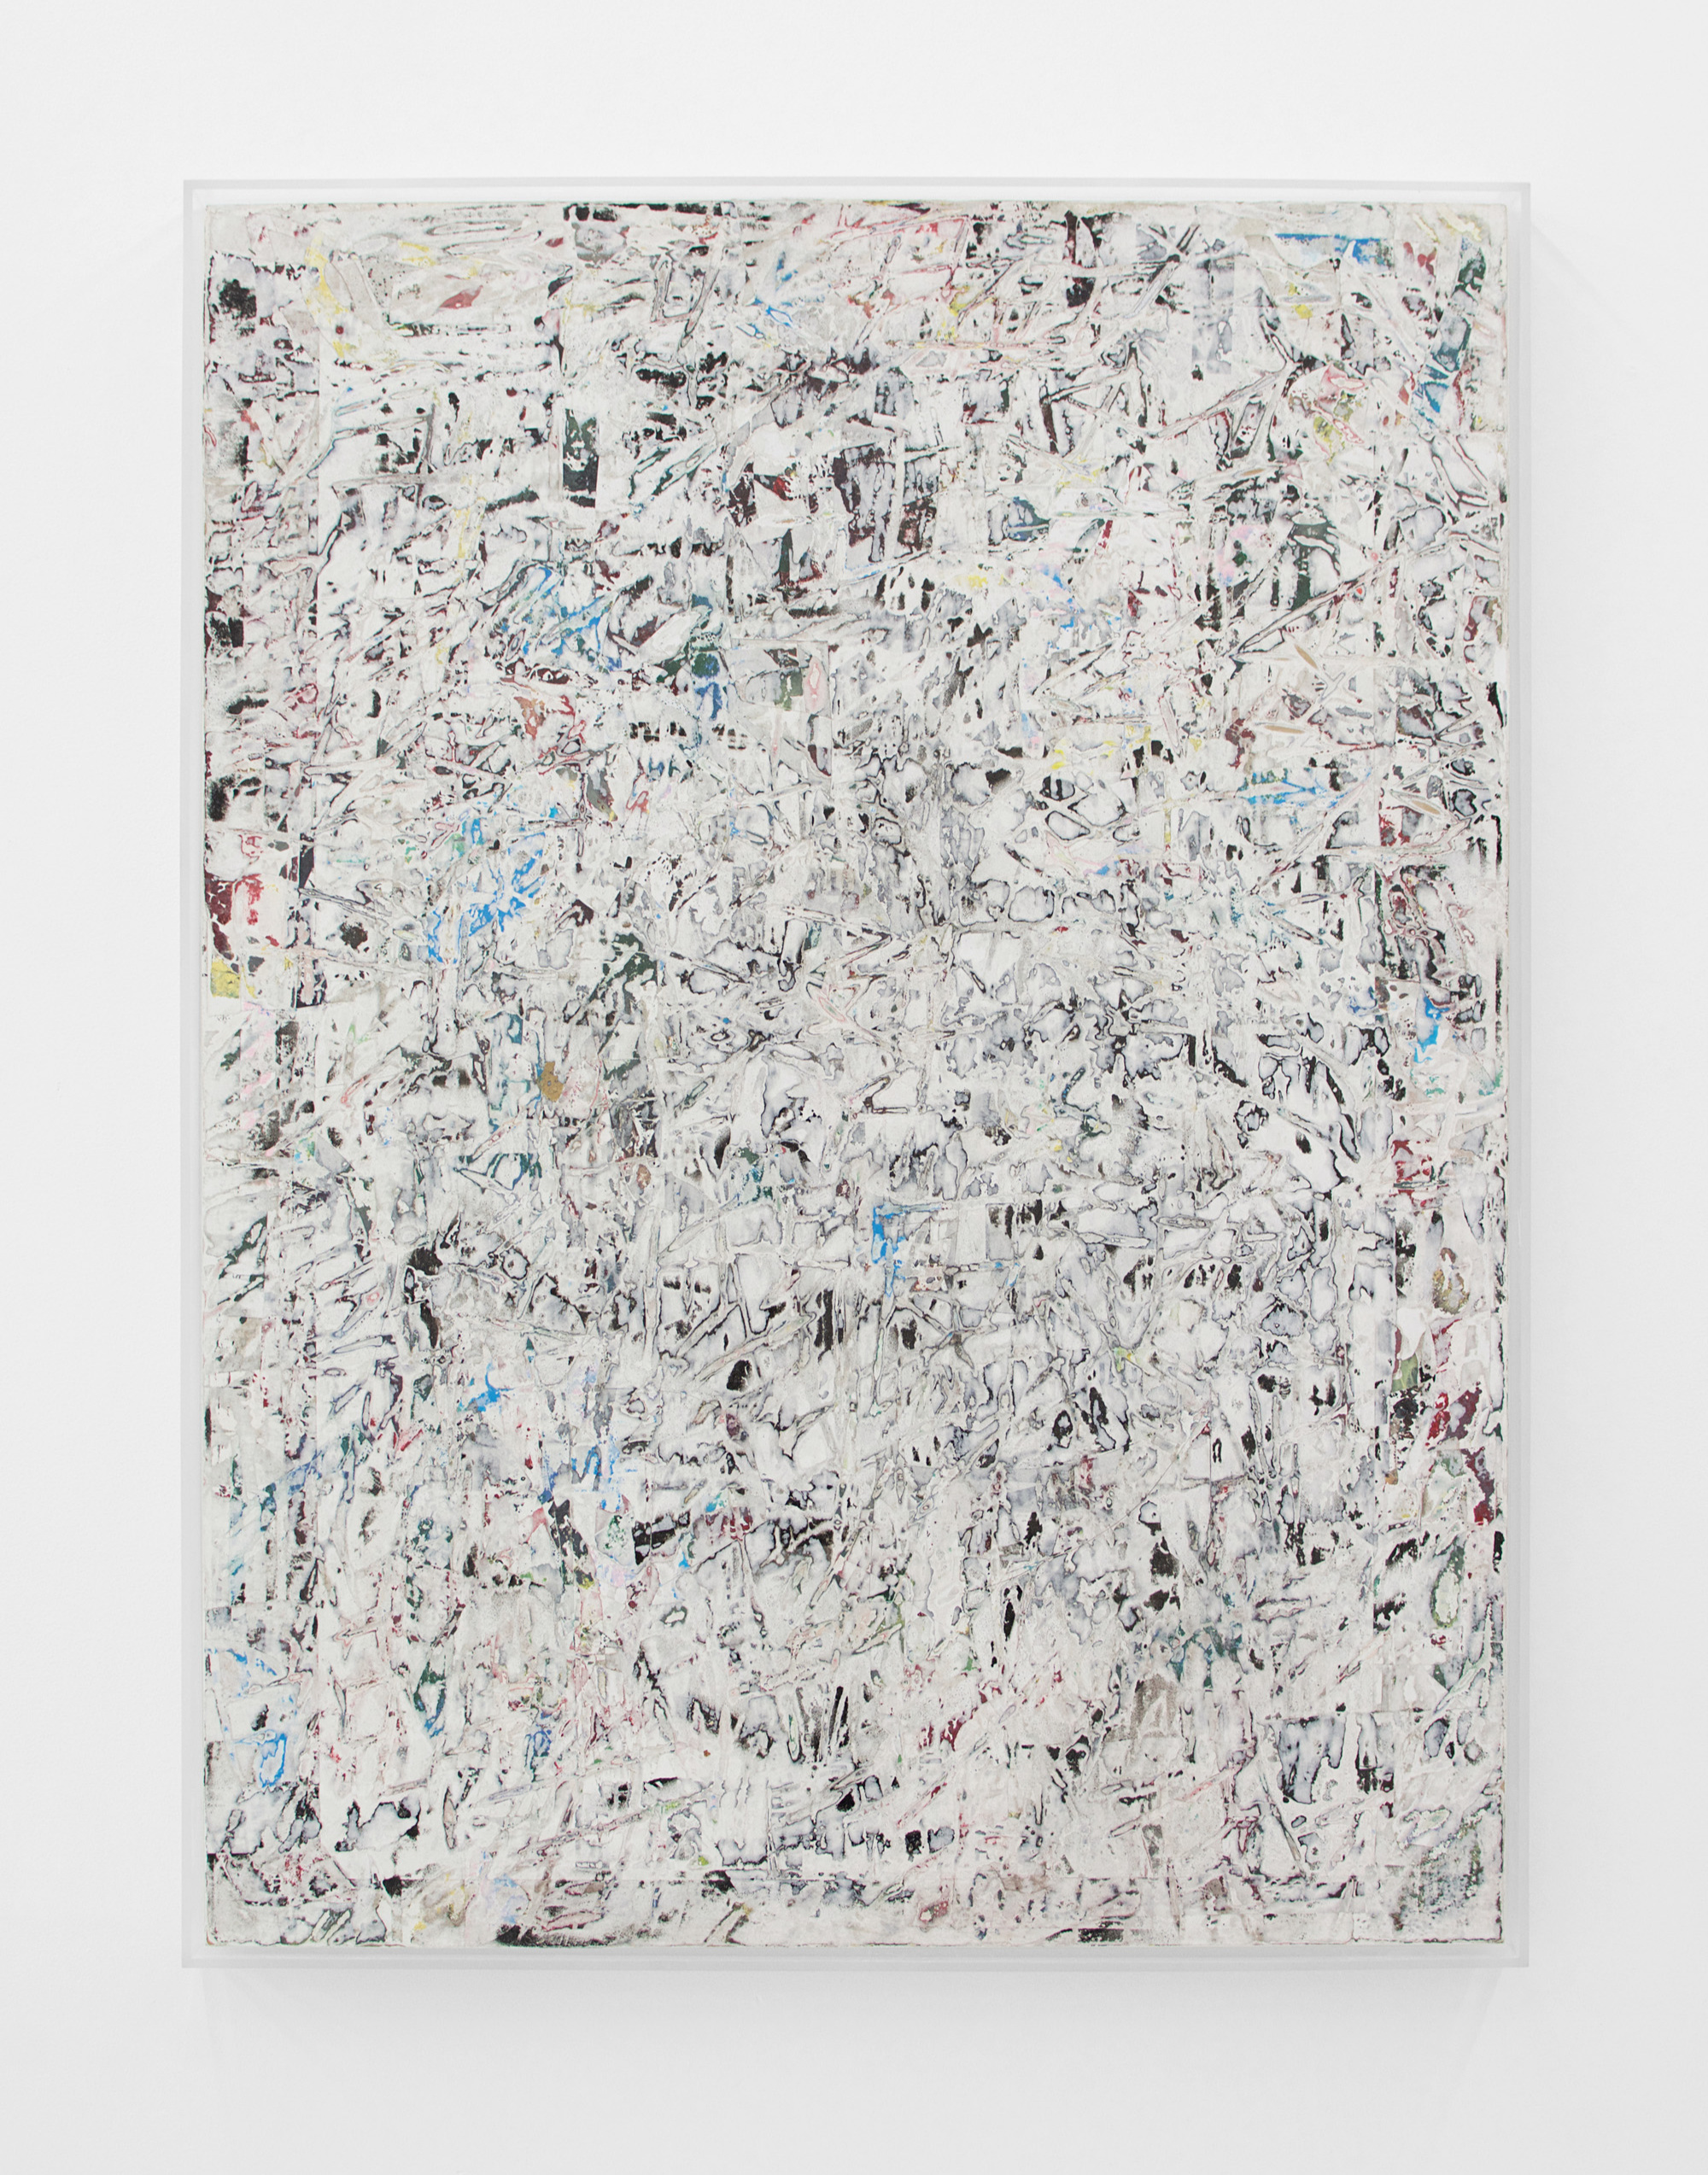 ANDREW LAUMANN   Untitled (Ambient Works),  2015, Acrylic paint, methylcellulose, paper, on panel in acrylic frame